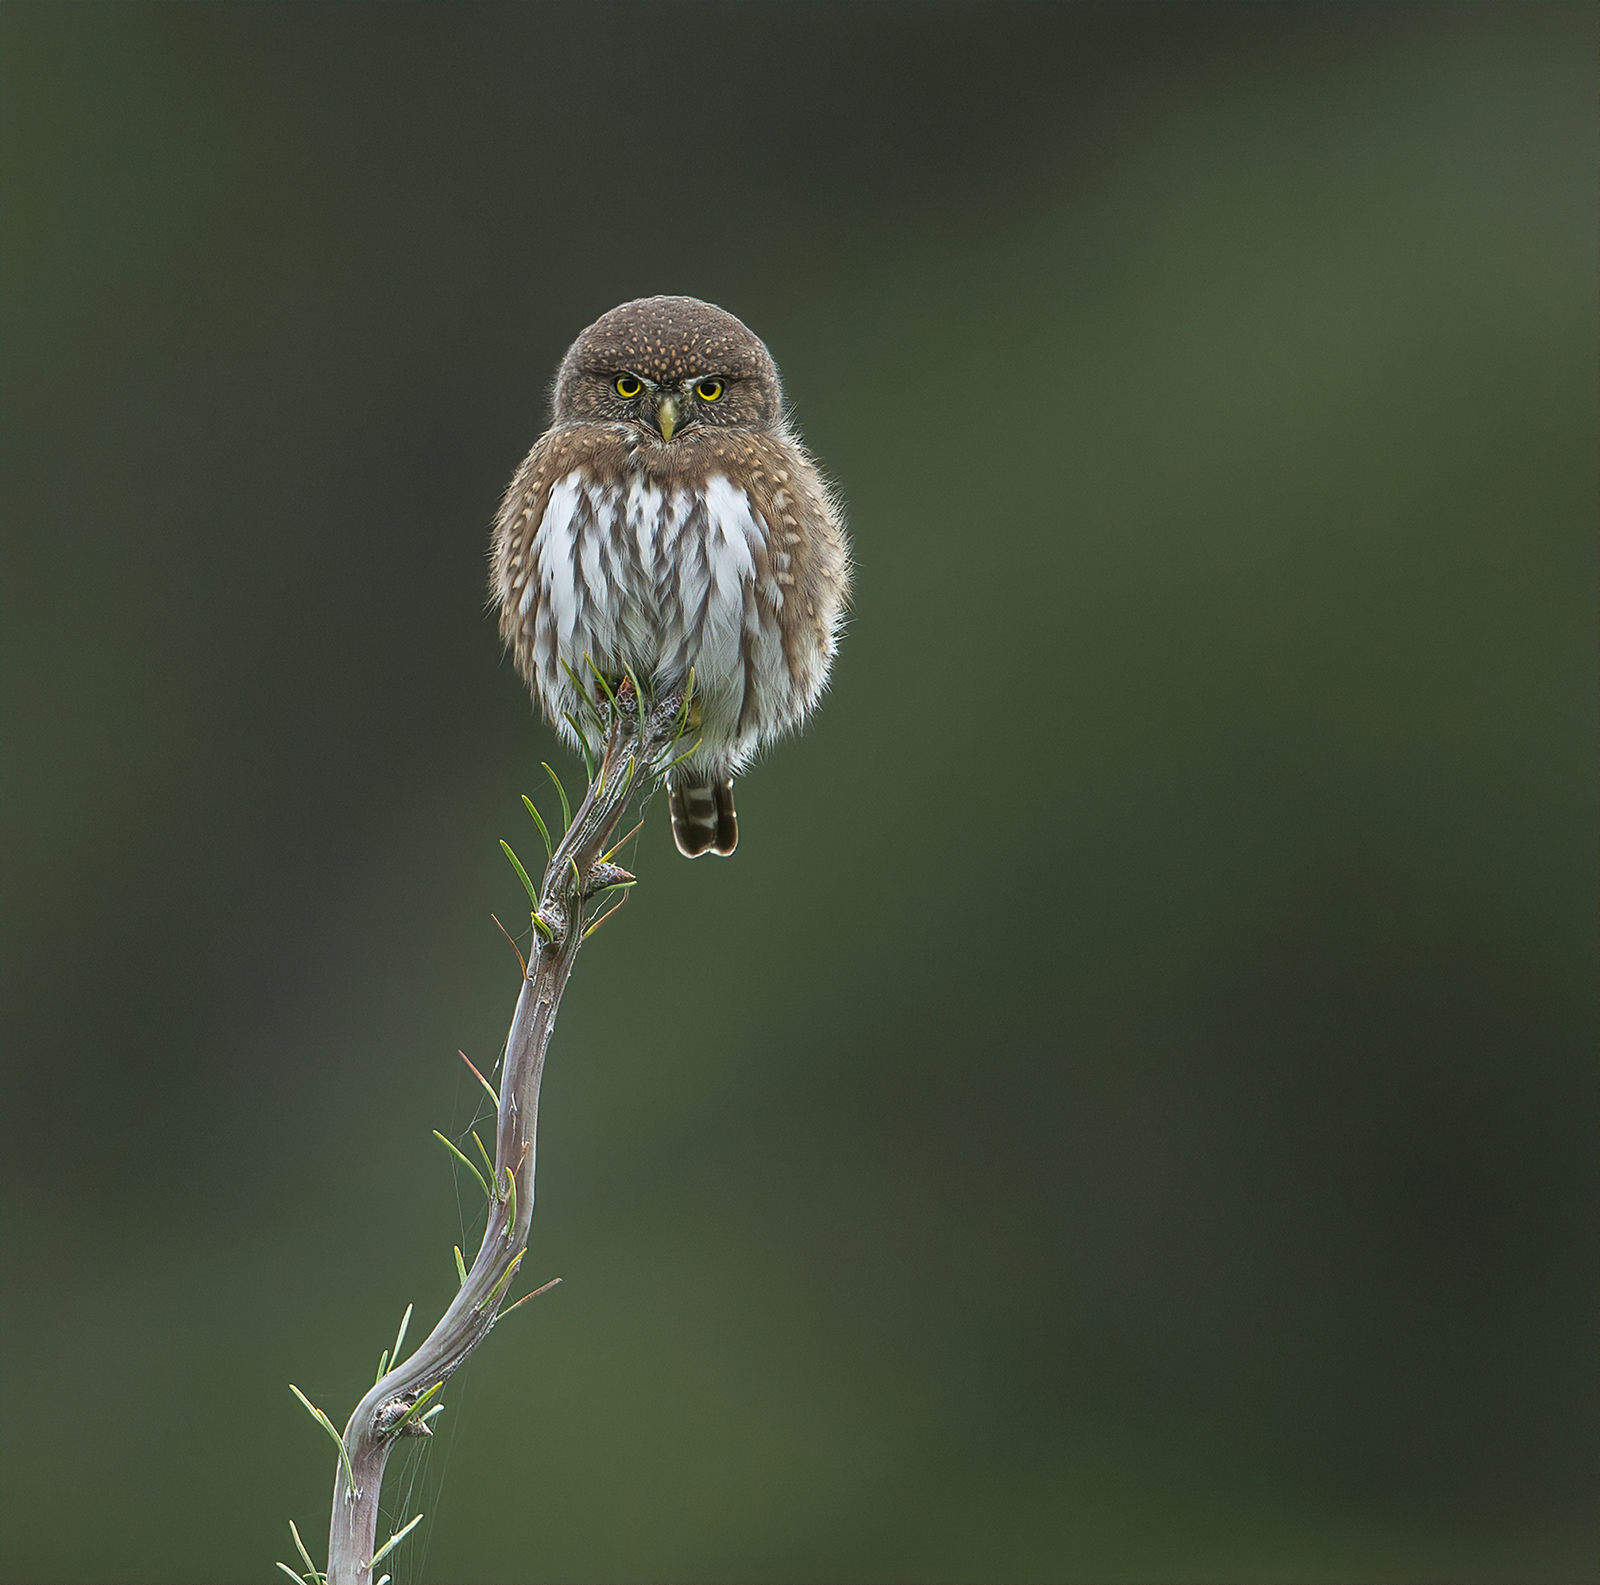 Northern pygmy-owl glare by Anthony Bucci